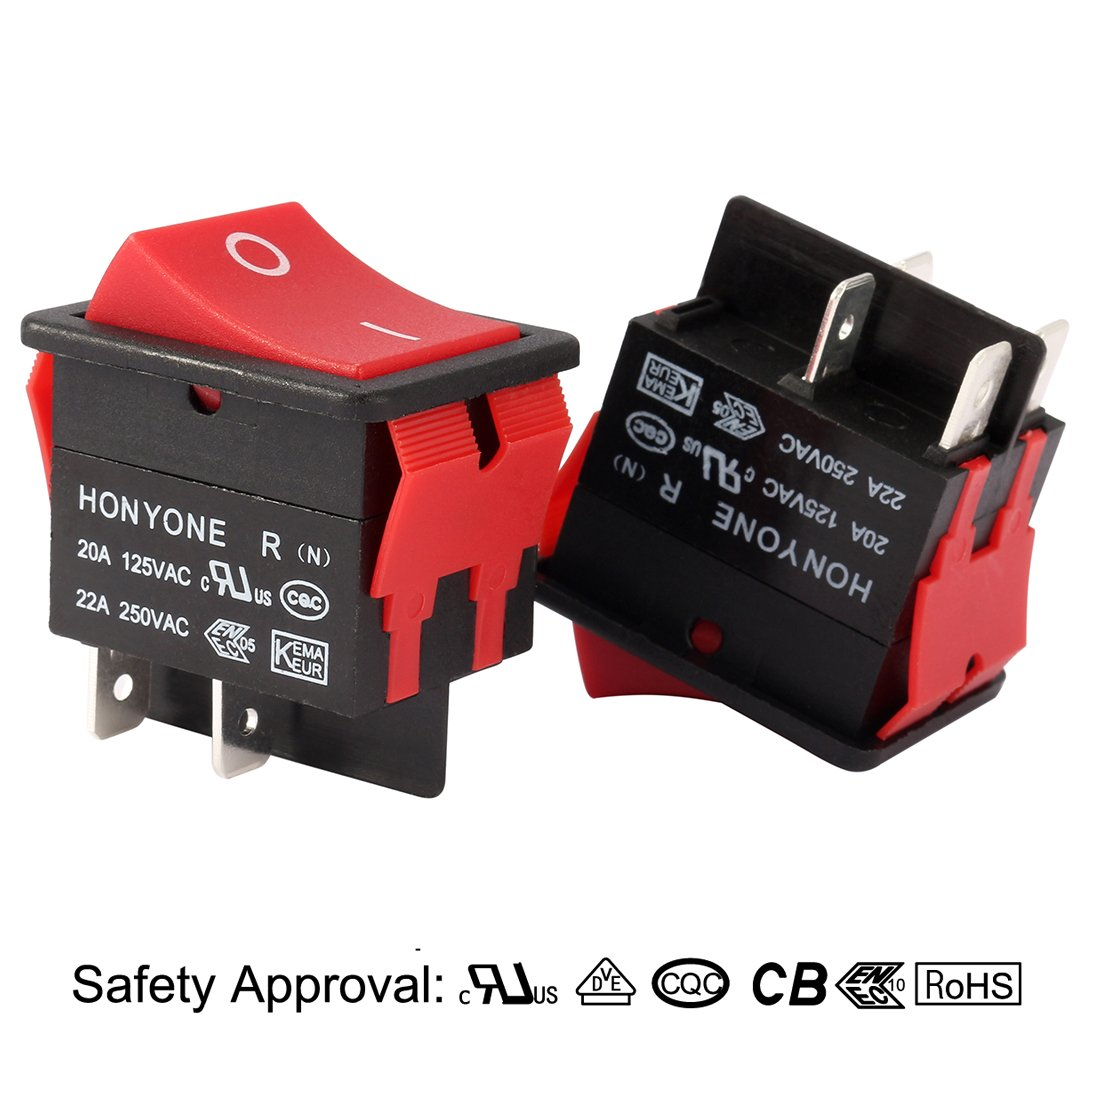 Uxcell Dpst 2 Position On Off Rocker Toggle Switches Fire Inc Restaurant System Parts Ansulstyle Dpdt Microswitch 4pin For Boats Ac 125v 20a 250v 22a Sports Outdoors